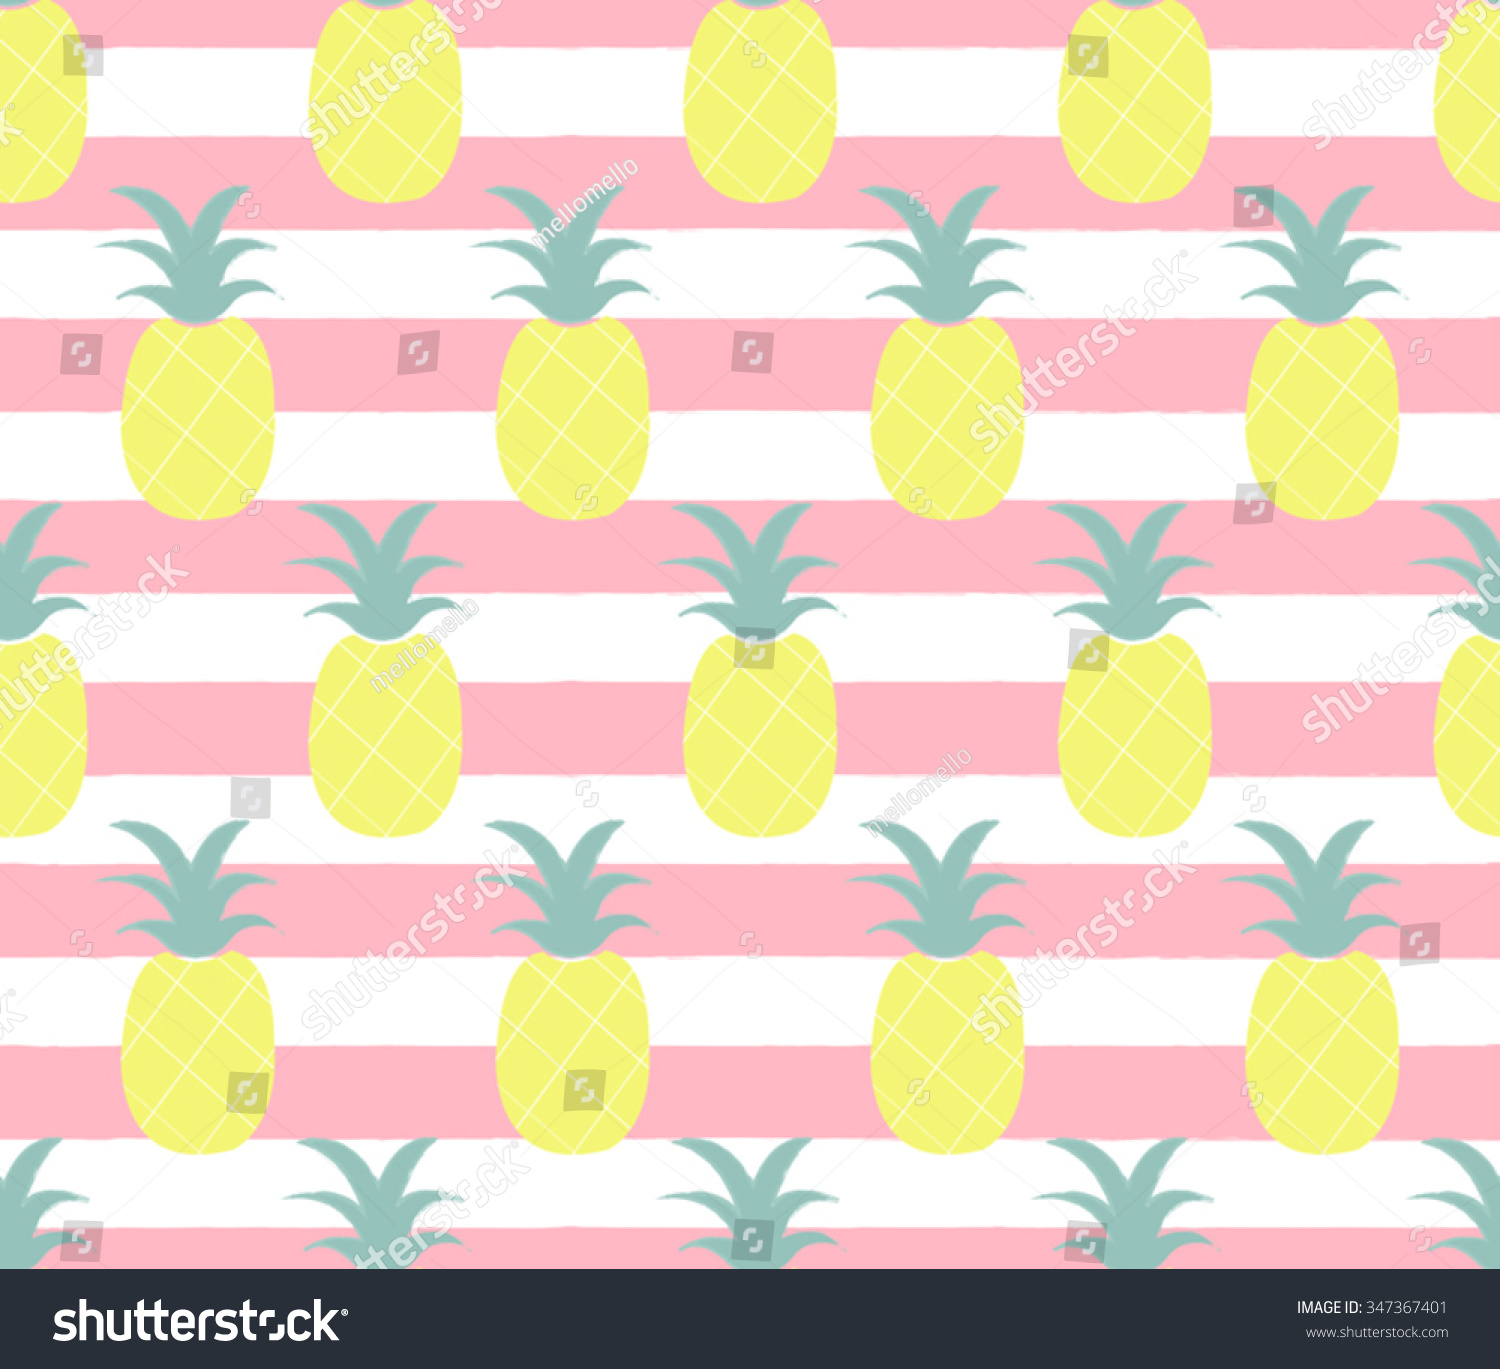 Cute Pineapple On Striped Pink Background Stock Vector 347367401 ... for Cute Pineapple Wallpaper  75tgx